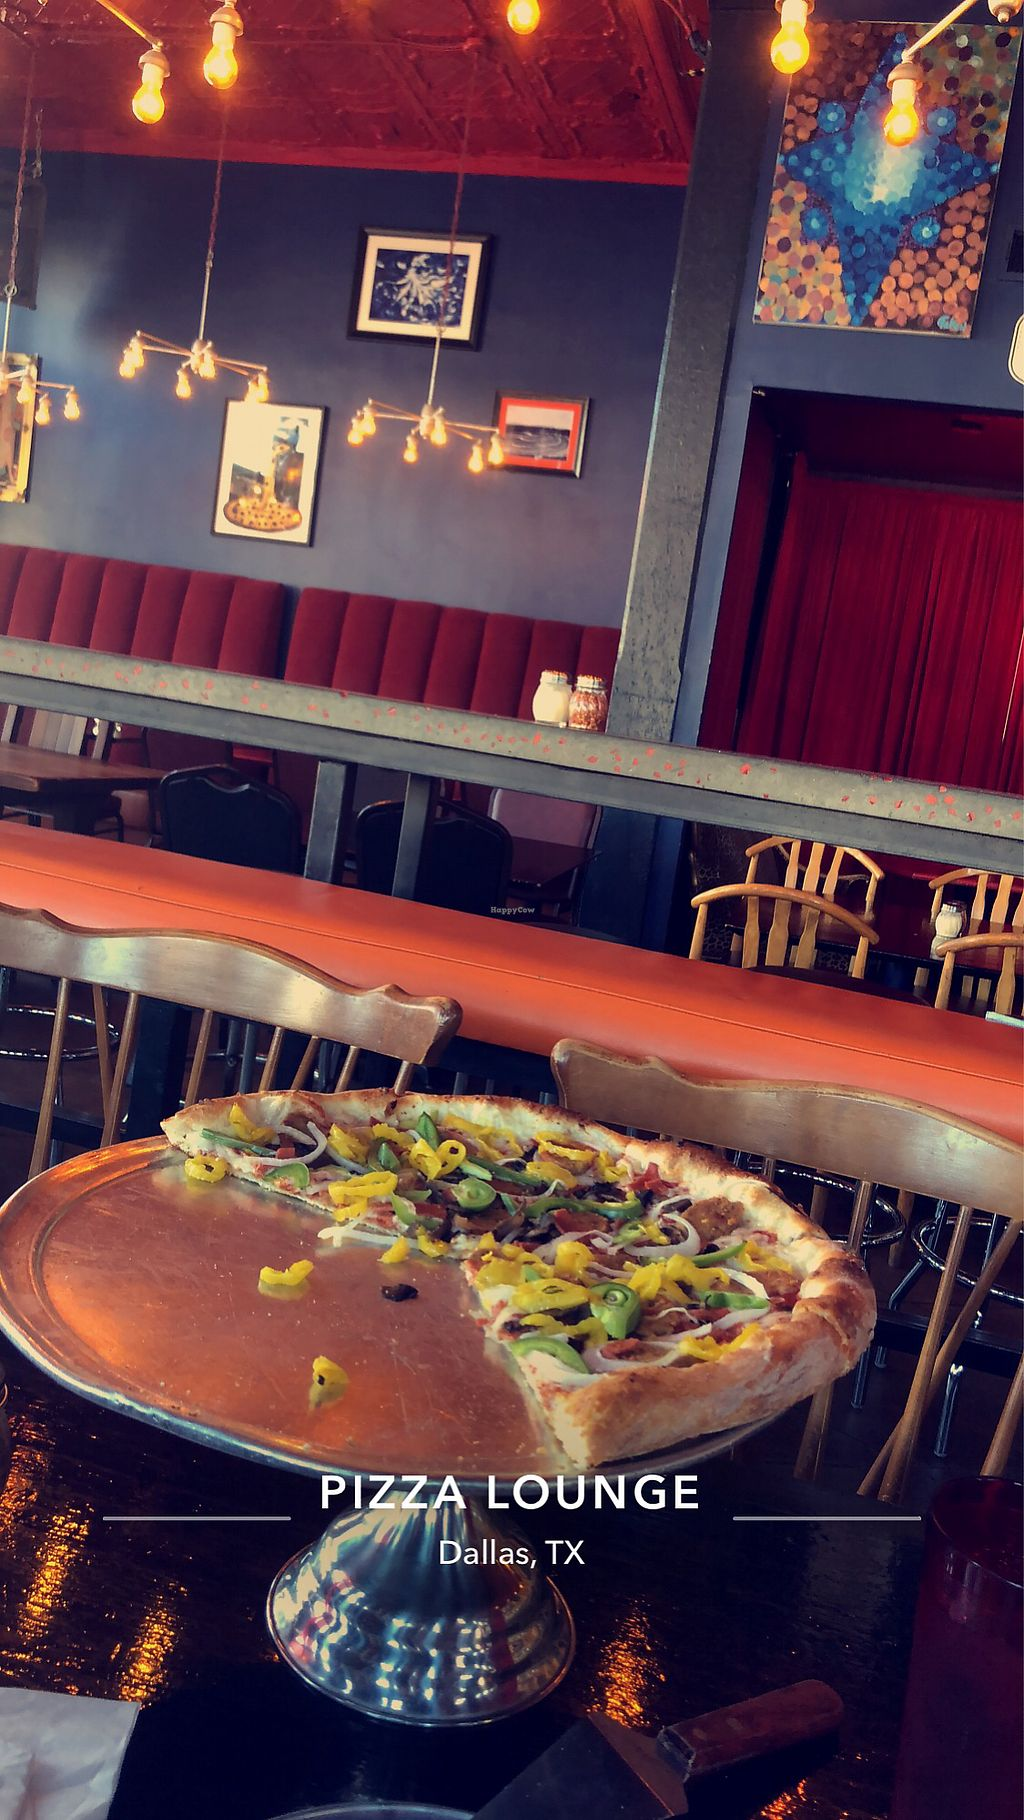 """Photo of Pizza Lounge  by <a href=""""/members/profile/forevercarli"""">forevercarli</a> <br/>Vegan Sofa King pizza  <br/> March 2, 2018  - <a href='/contact/abuse/image/20710/365932'>Report</a>"""